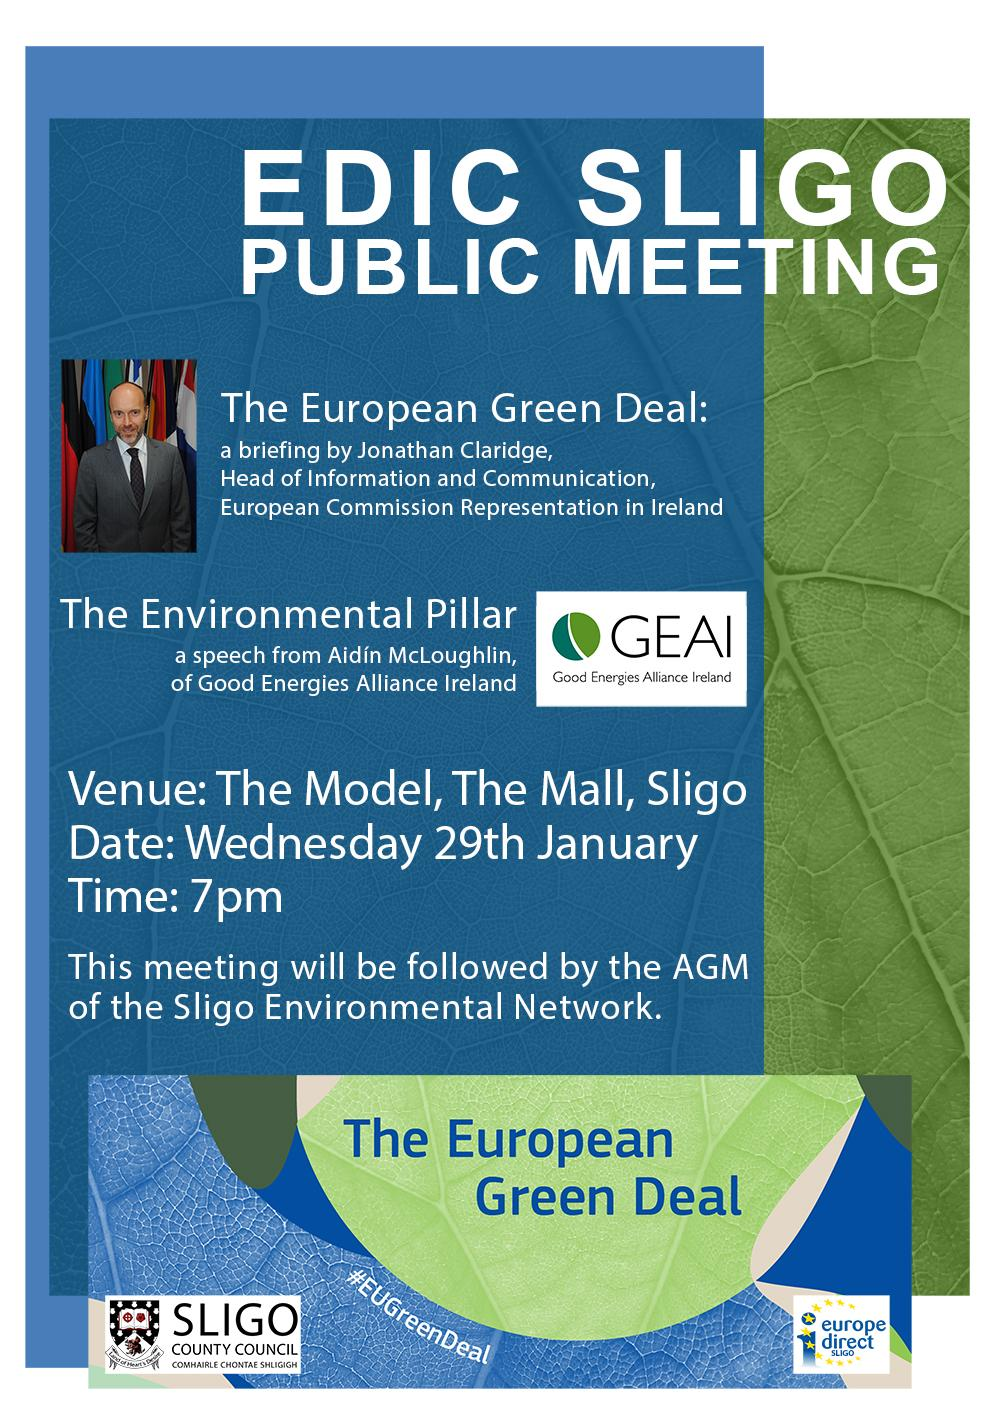 A Poster with information about EDIC Sligo Public Meeting on January 29th 2020